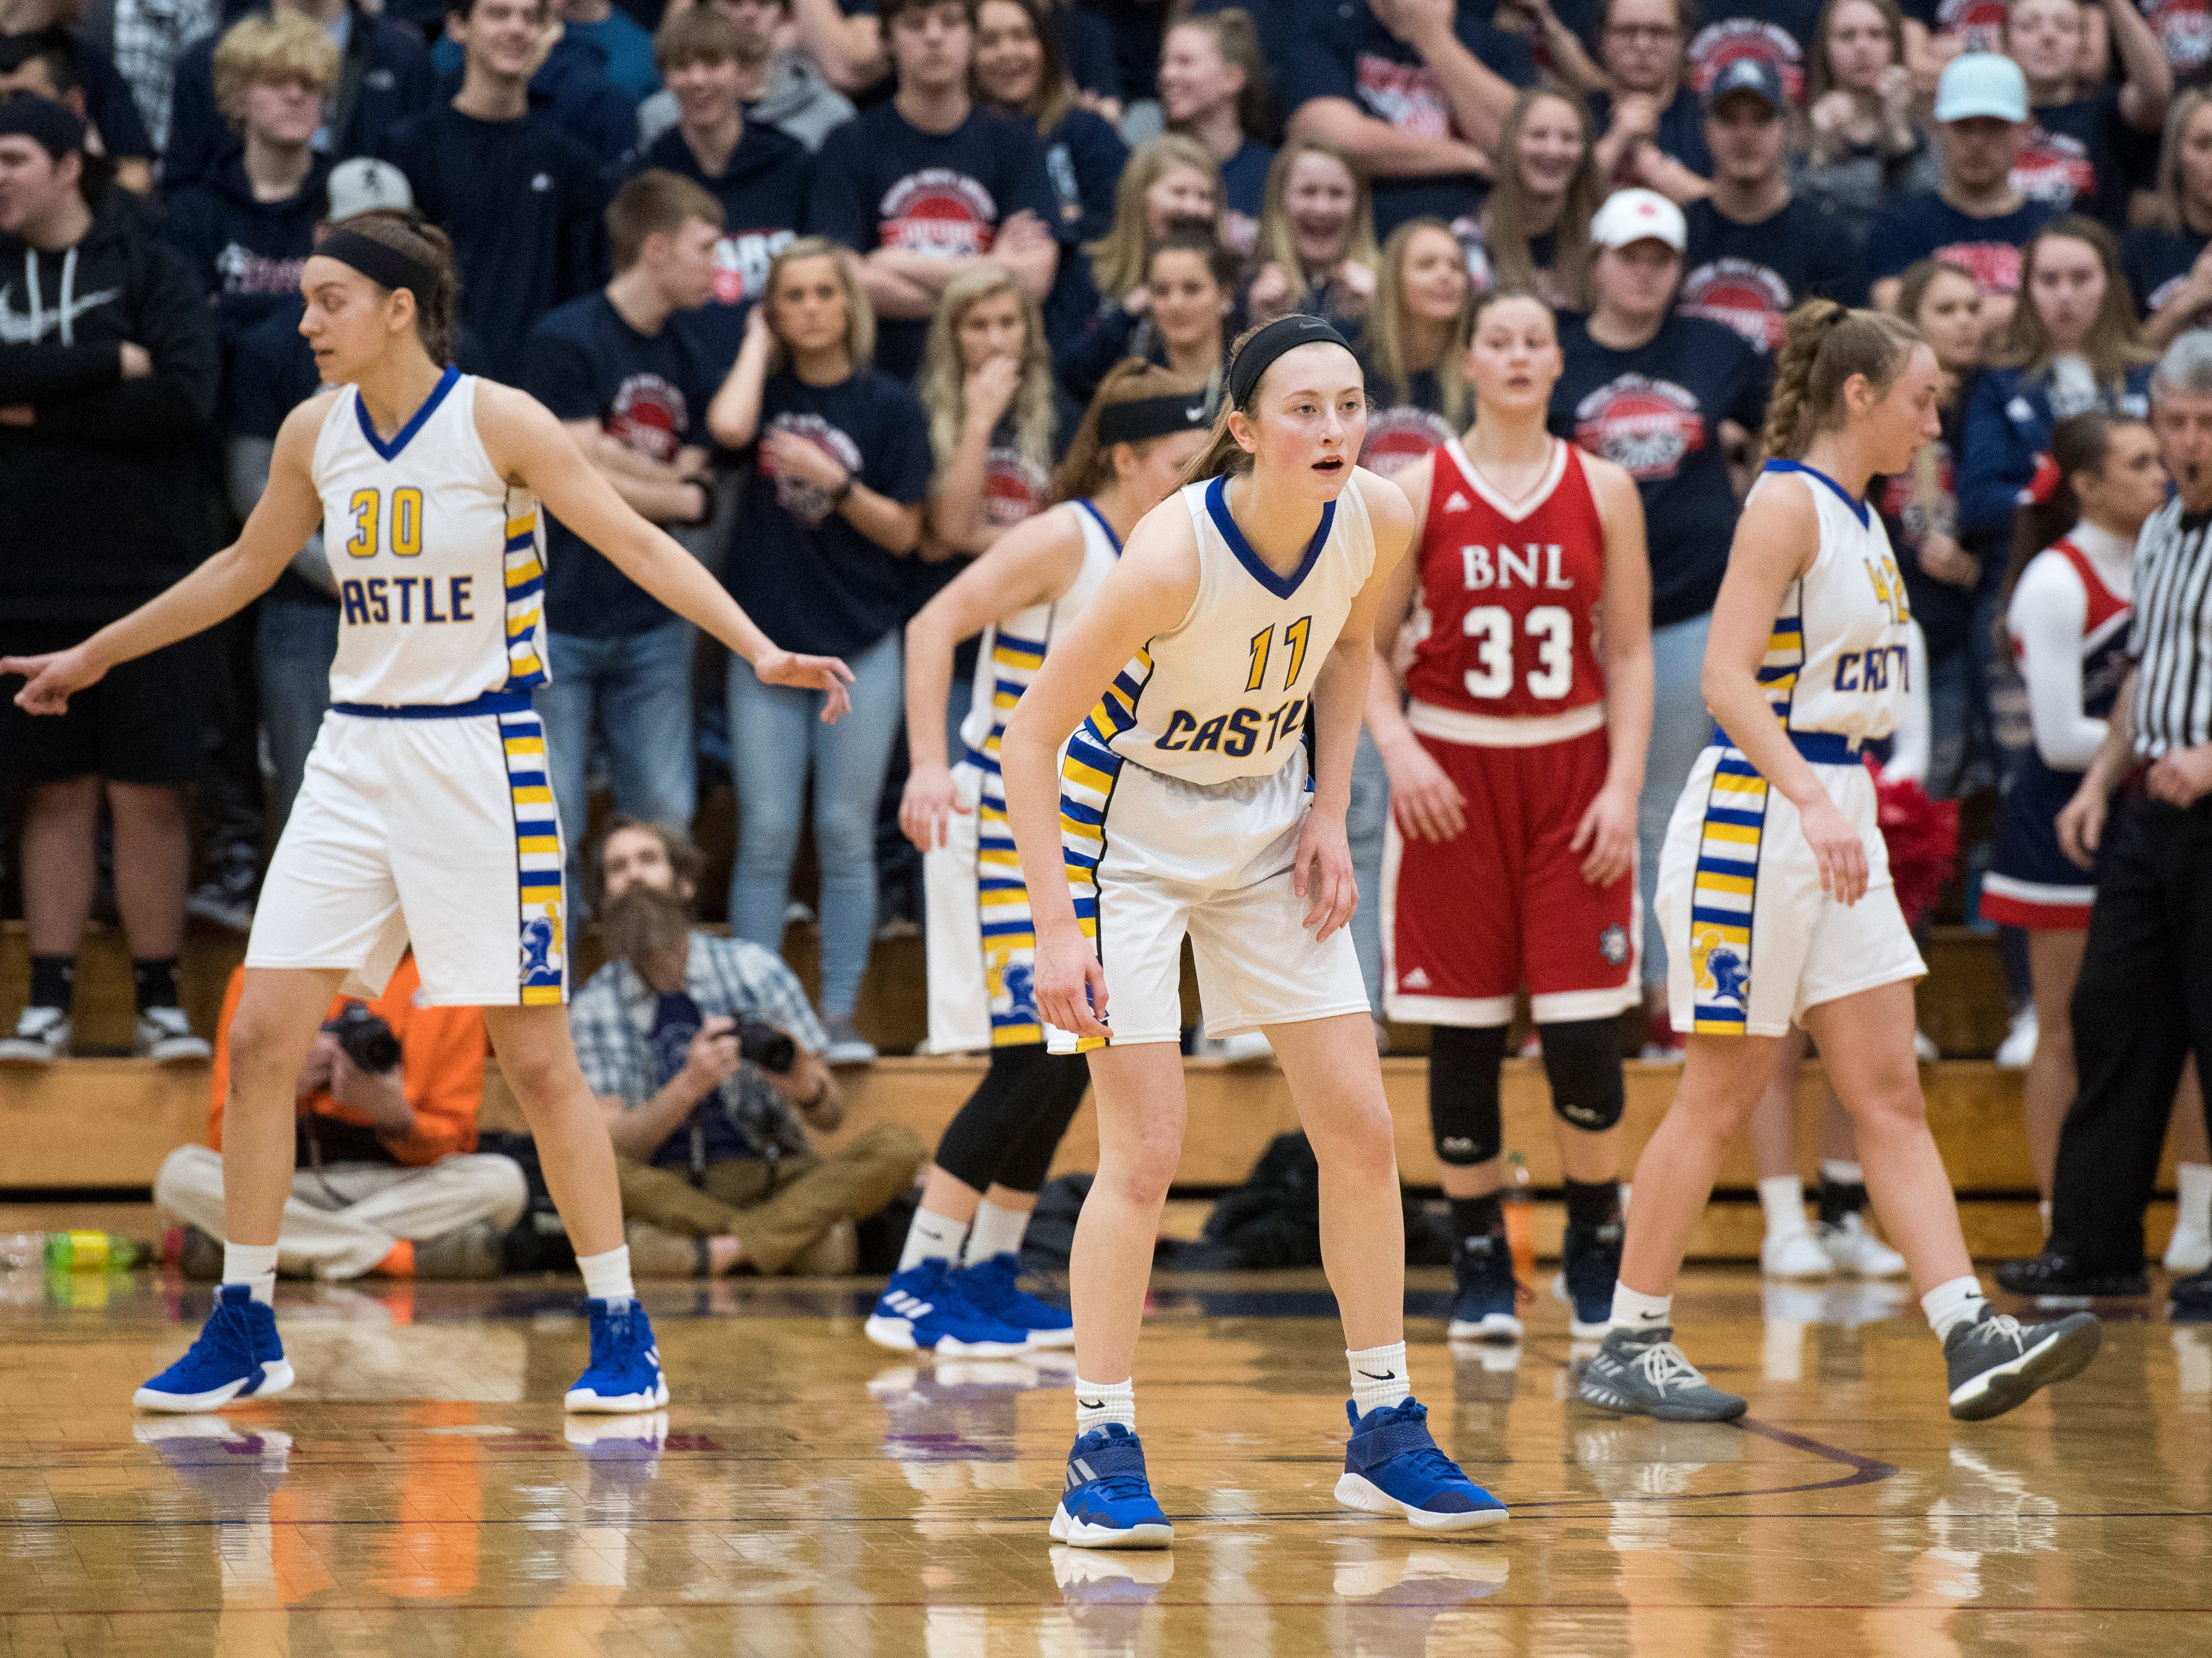 The Castle Knights defend during the IHSAA Girls Basketball Class 4A Regional Championship game against the Bedford North Lawrence Lady Stars at the Stars Field House in Bedford, Ind. Saturday, Feb. 9, 2019.